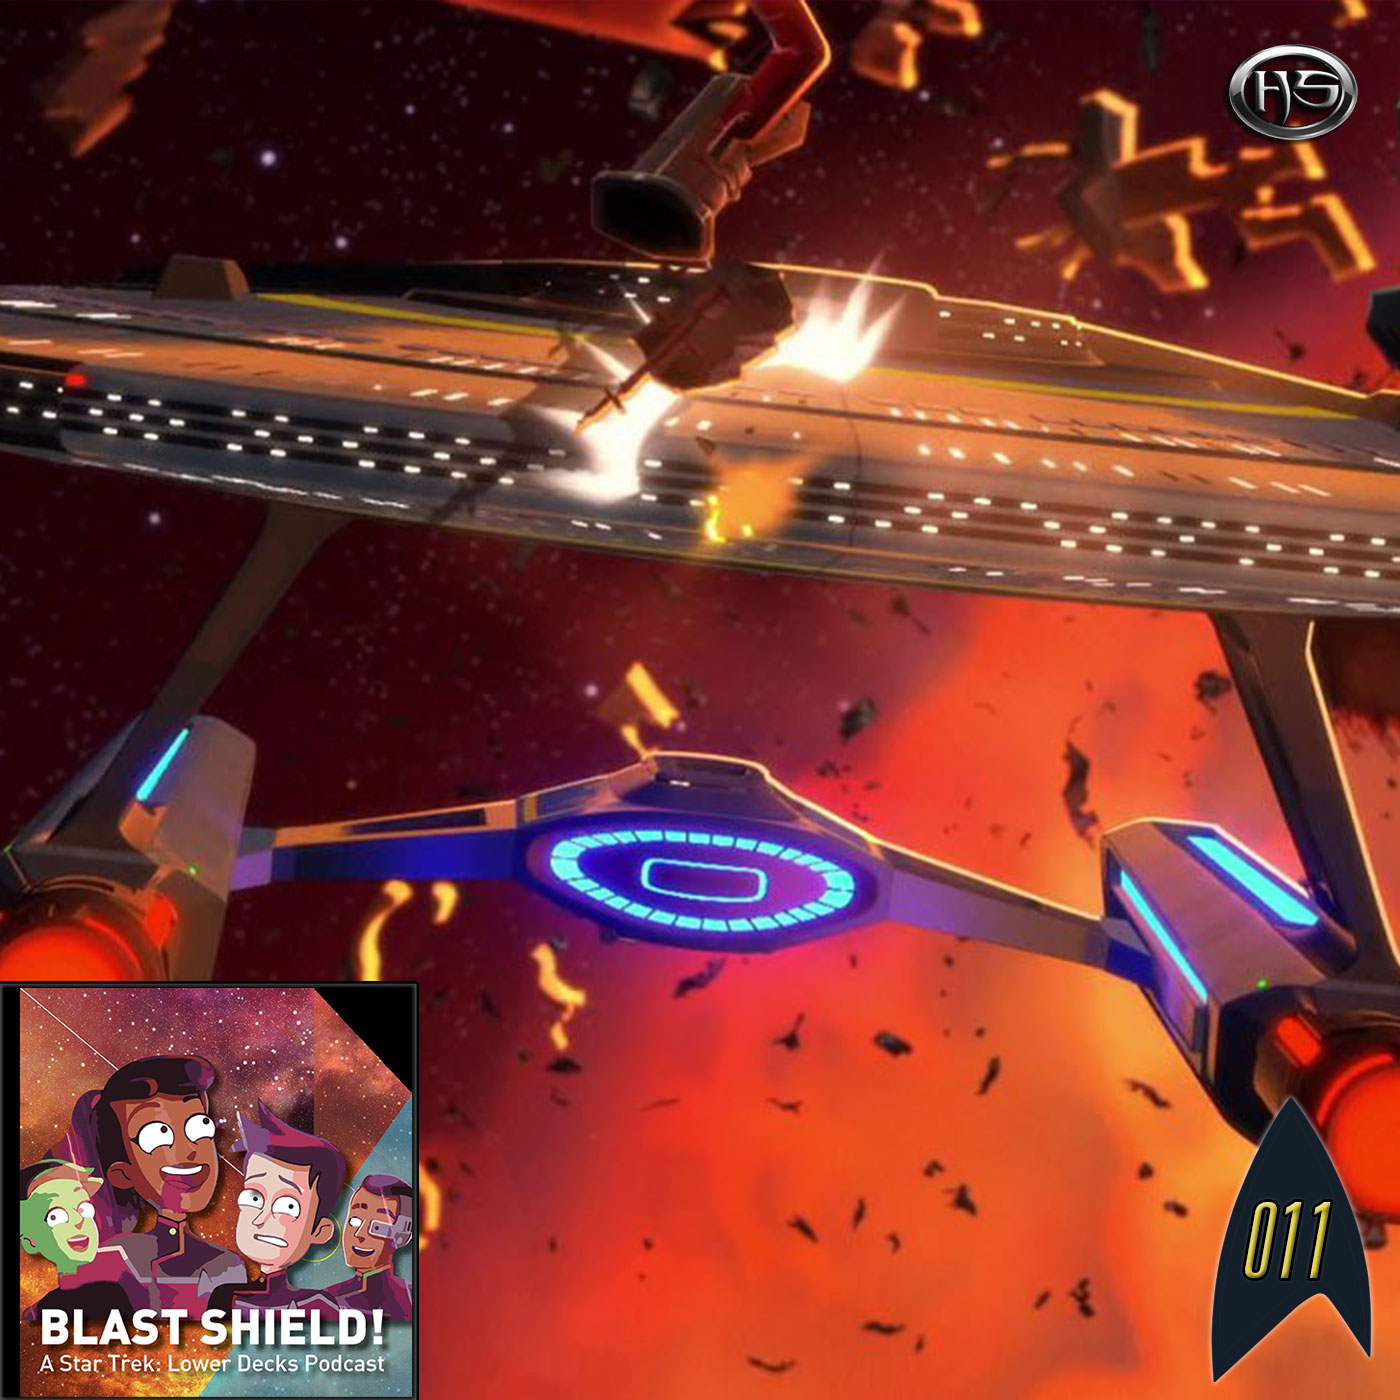 Blast Shield! Episode 11